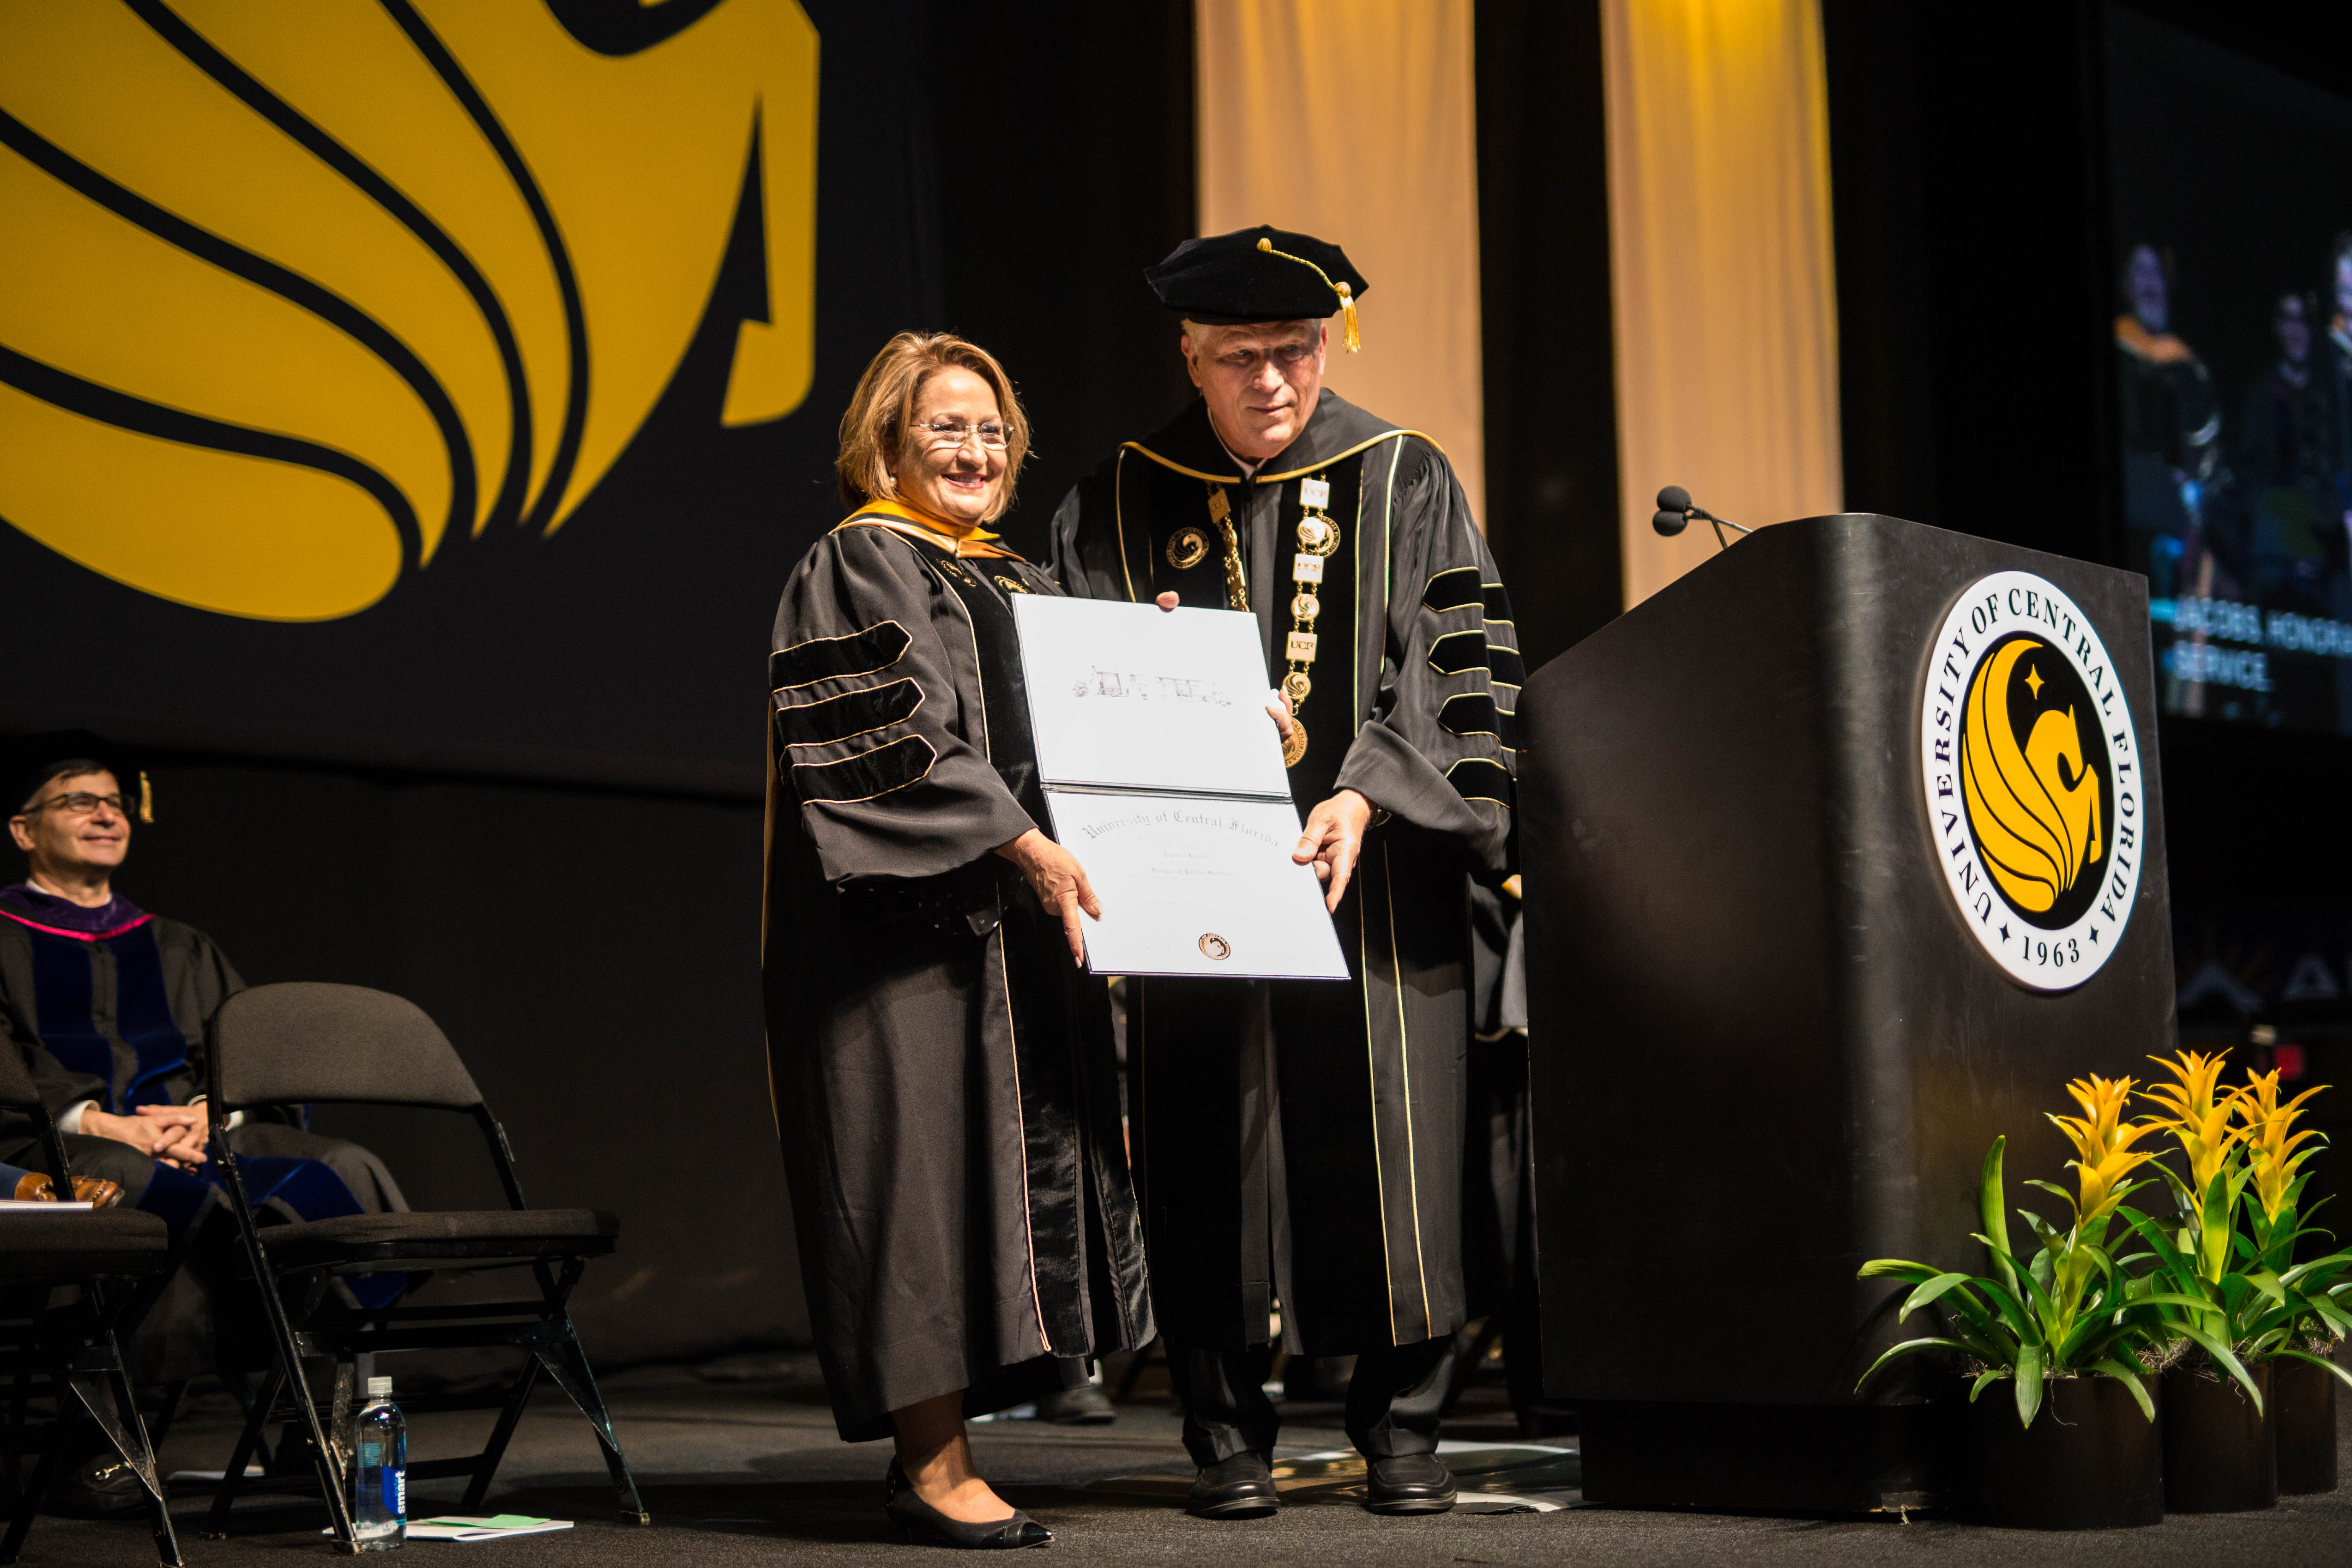 Orange County Mayor Teresa Jacobs holds a honorary diploma as John C. Hitt presents it to her own stage.